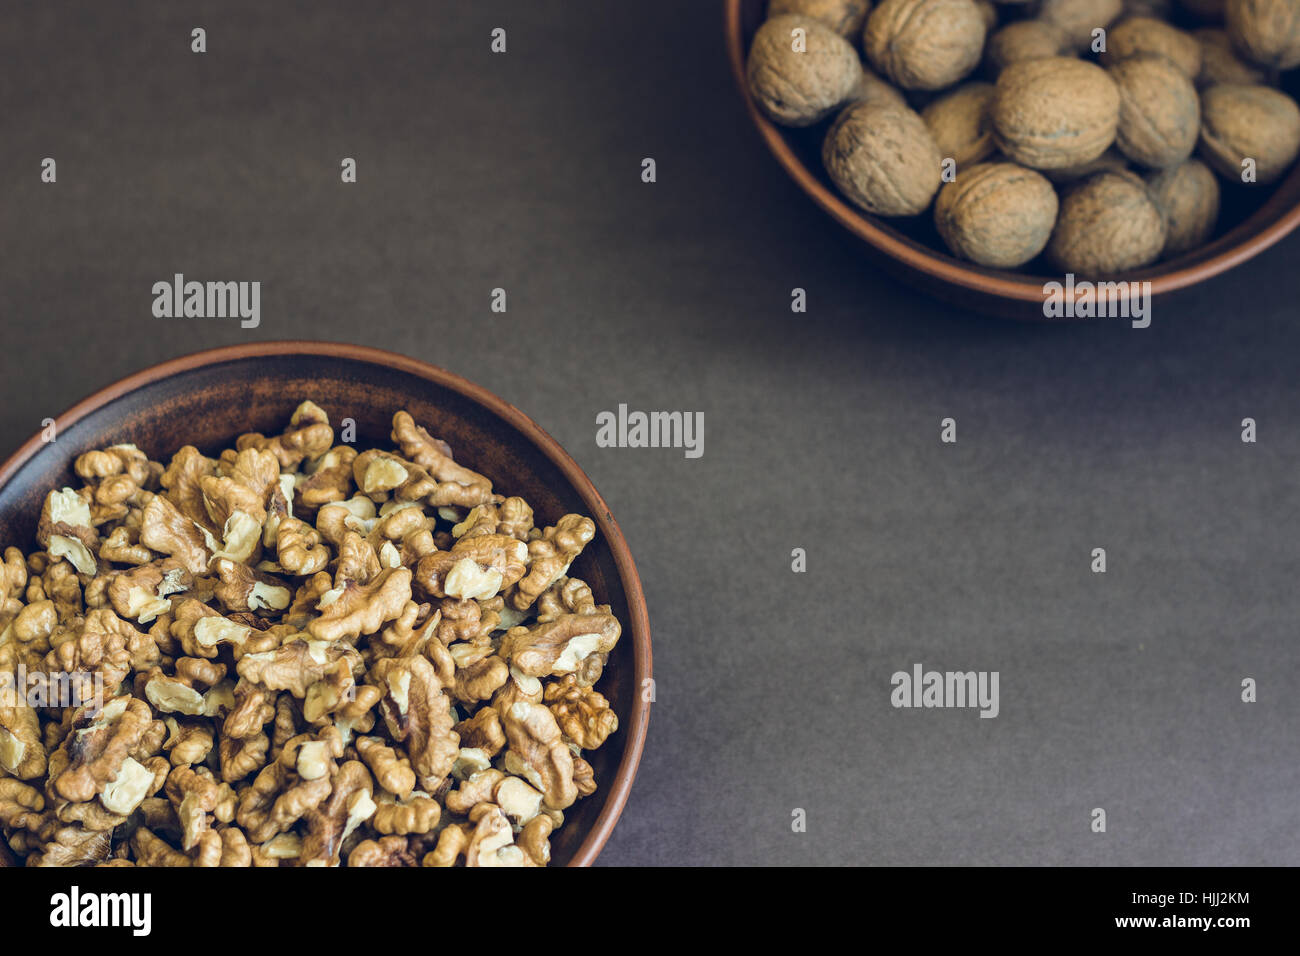 Walnut kernels and whole walnuts in brown ceramic bowls. Healthy organic food concept. - Stock Image